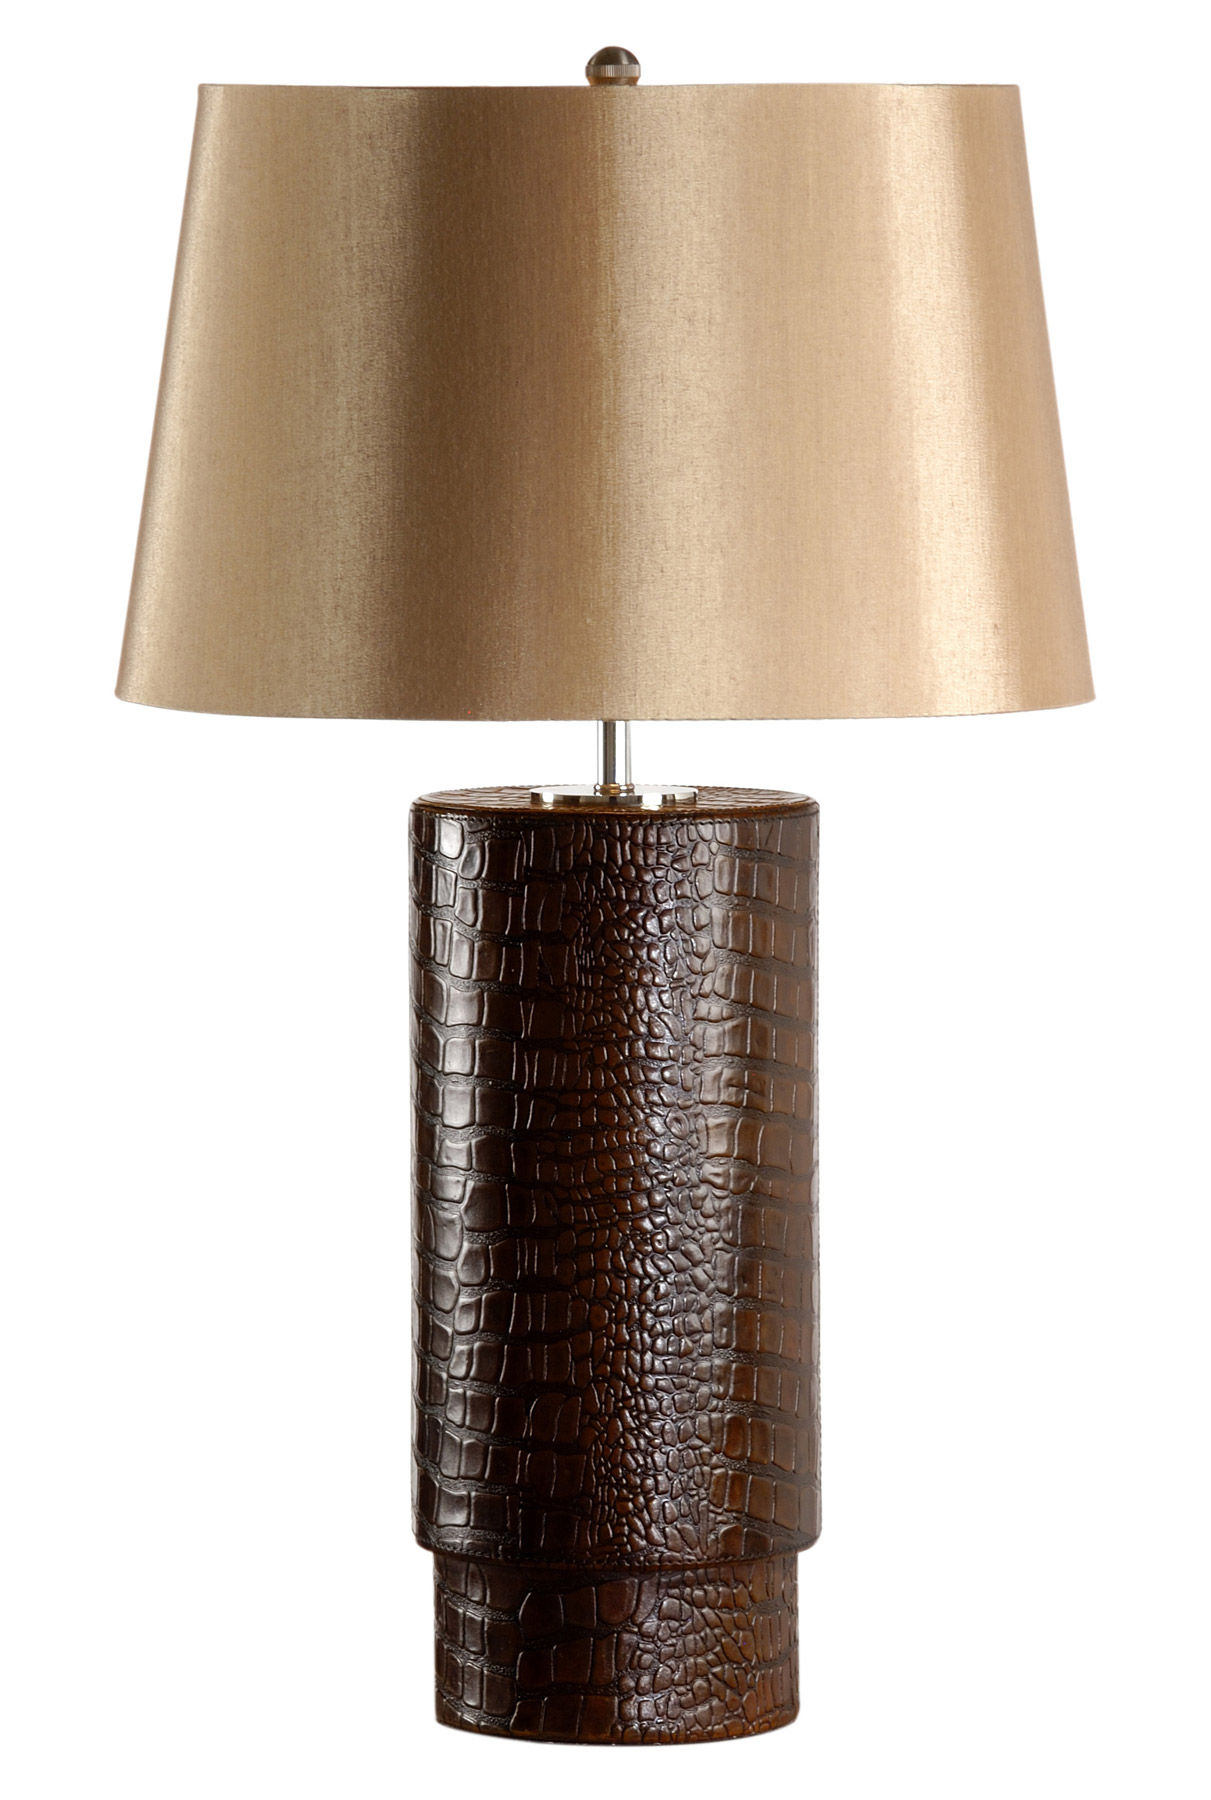 frederick cooper table lamps photo - 7